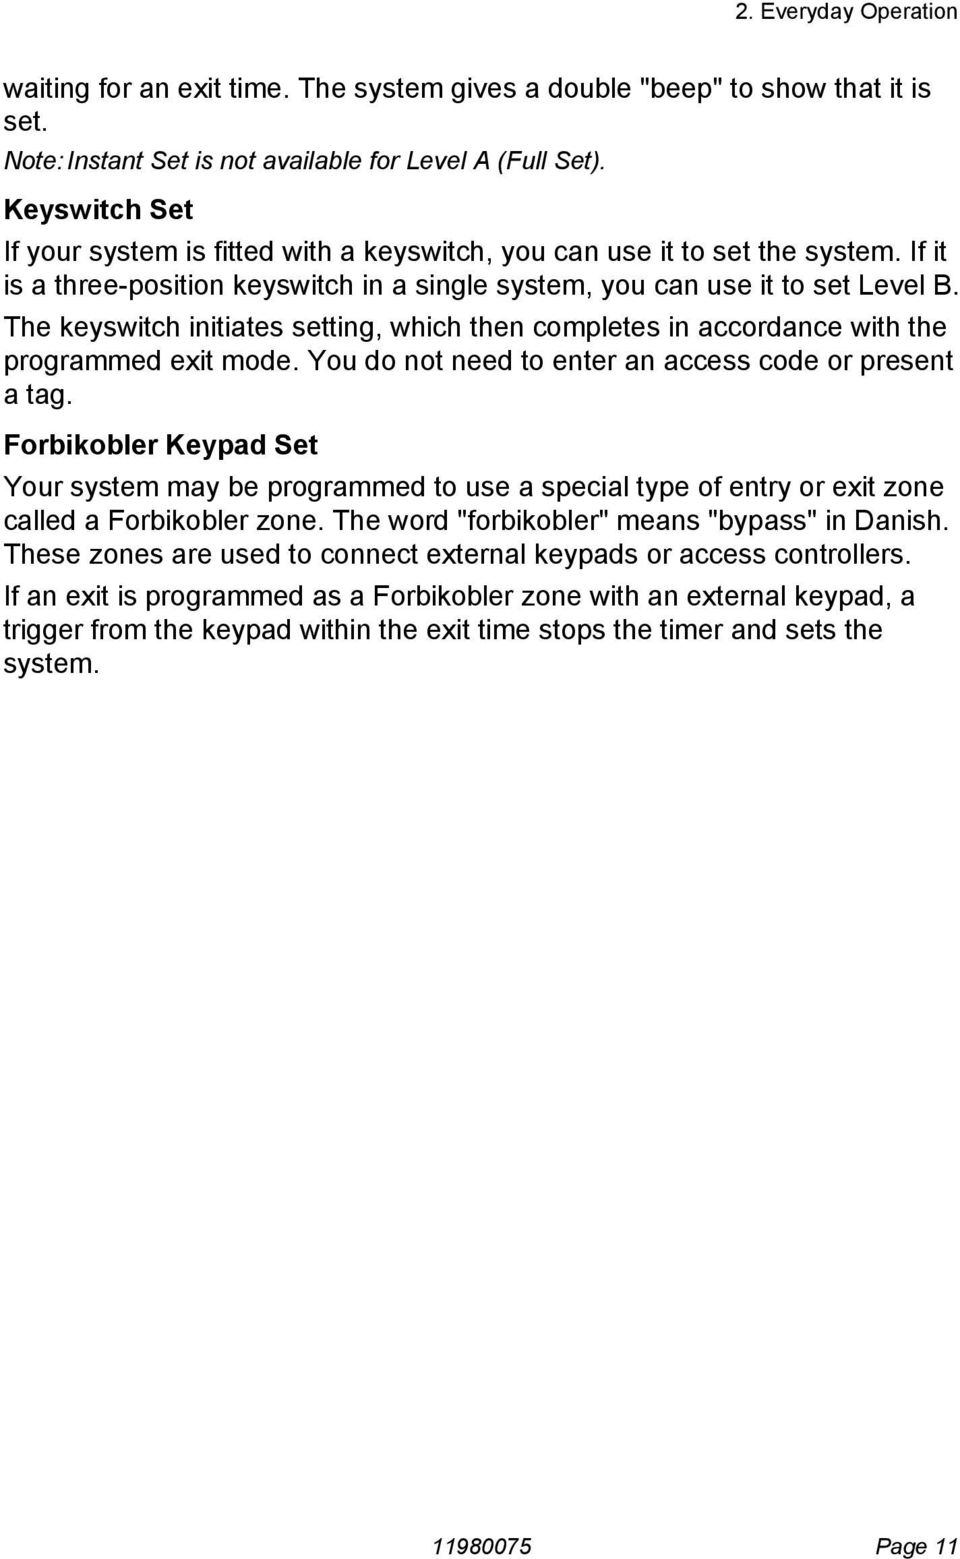 The keyswitch initiates setting, which then completes in accordance with the programmed exit mode. You do not need to enter an access code or present a tag.